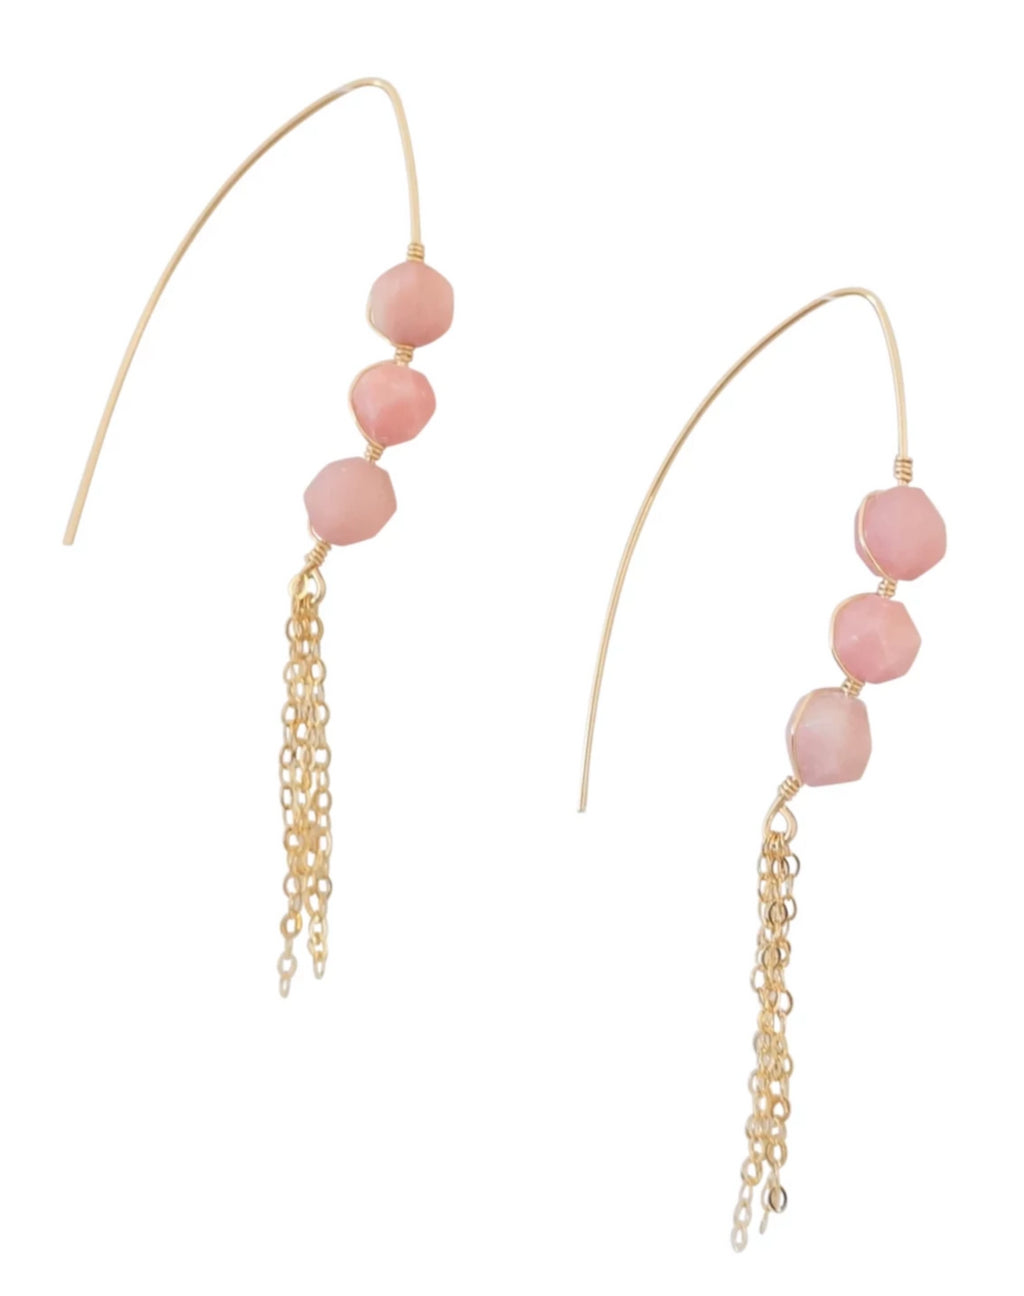 Loved Earrings - Carolyn Hearn Designs